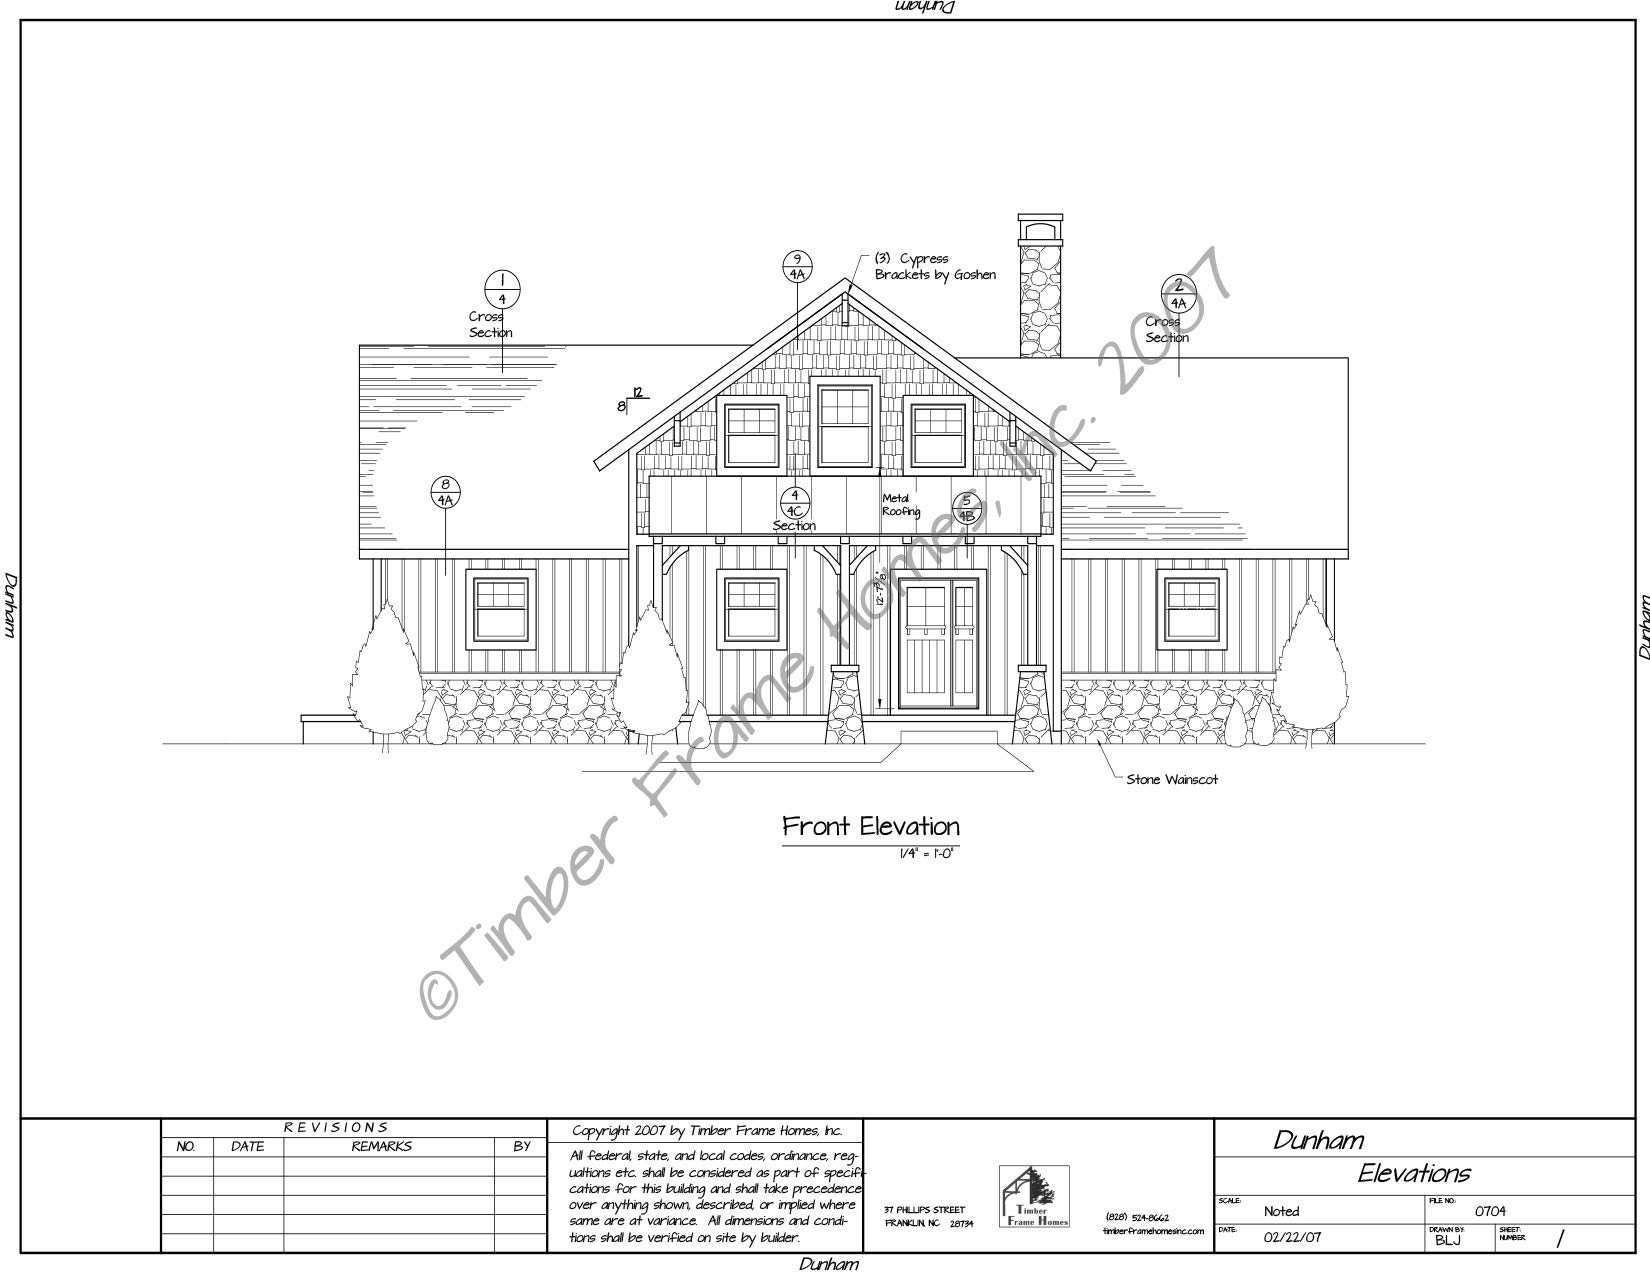 Home Plans - The Dunham Timber Frame (DESIGN PROOF) by TimberStead